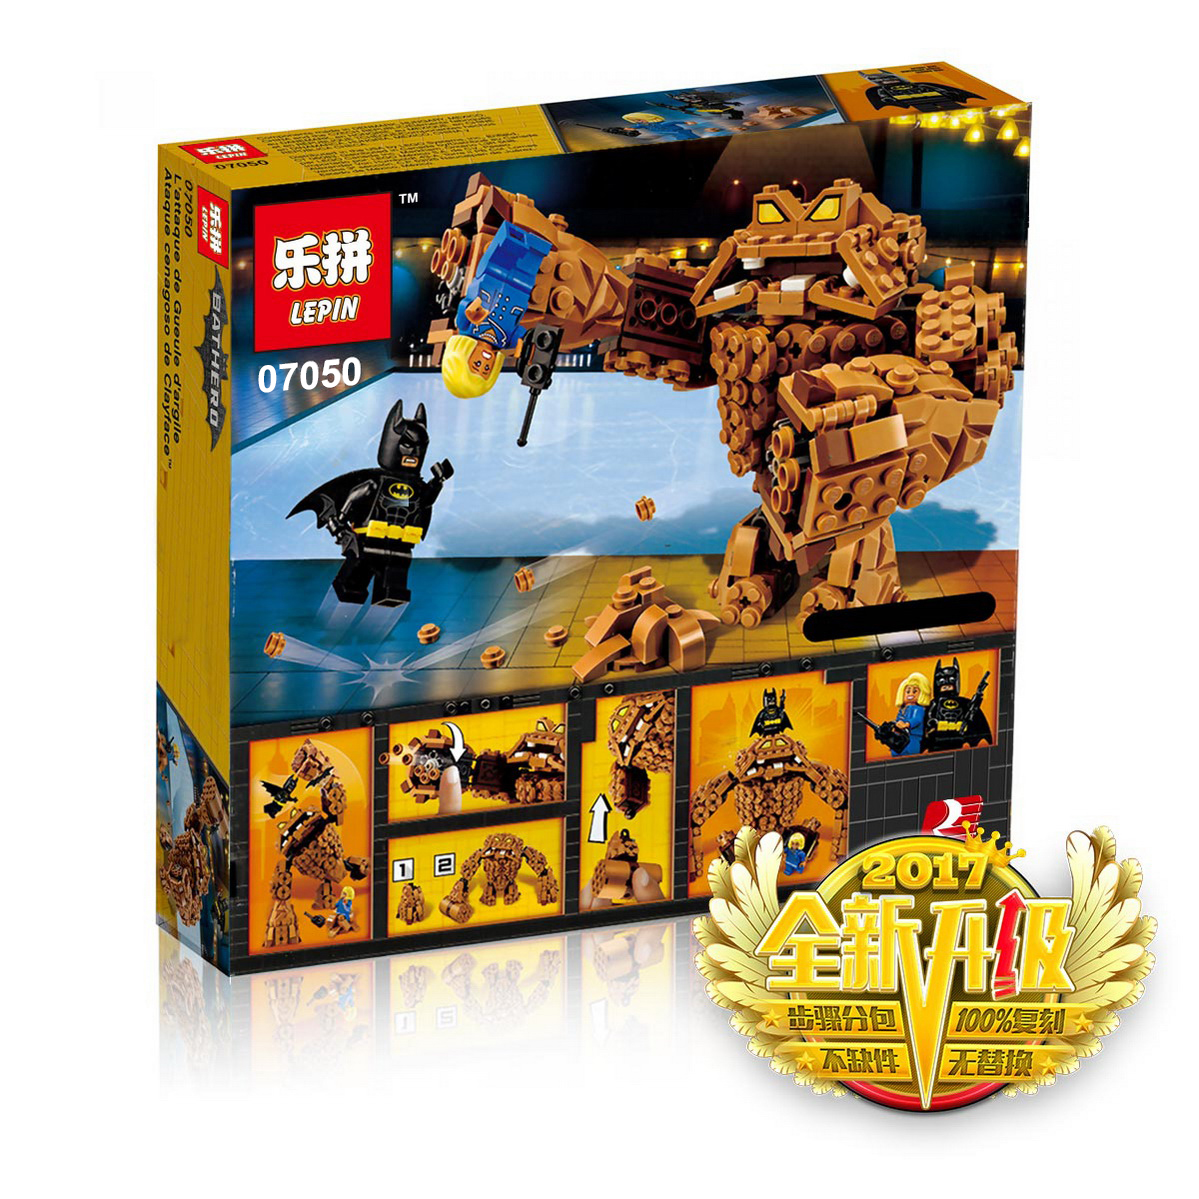 469+ PCS Building Bricks, LP 07050 Building Blocks Batman Movie 70904 Clayface Splat Attack.